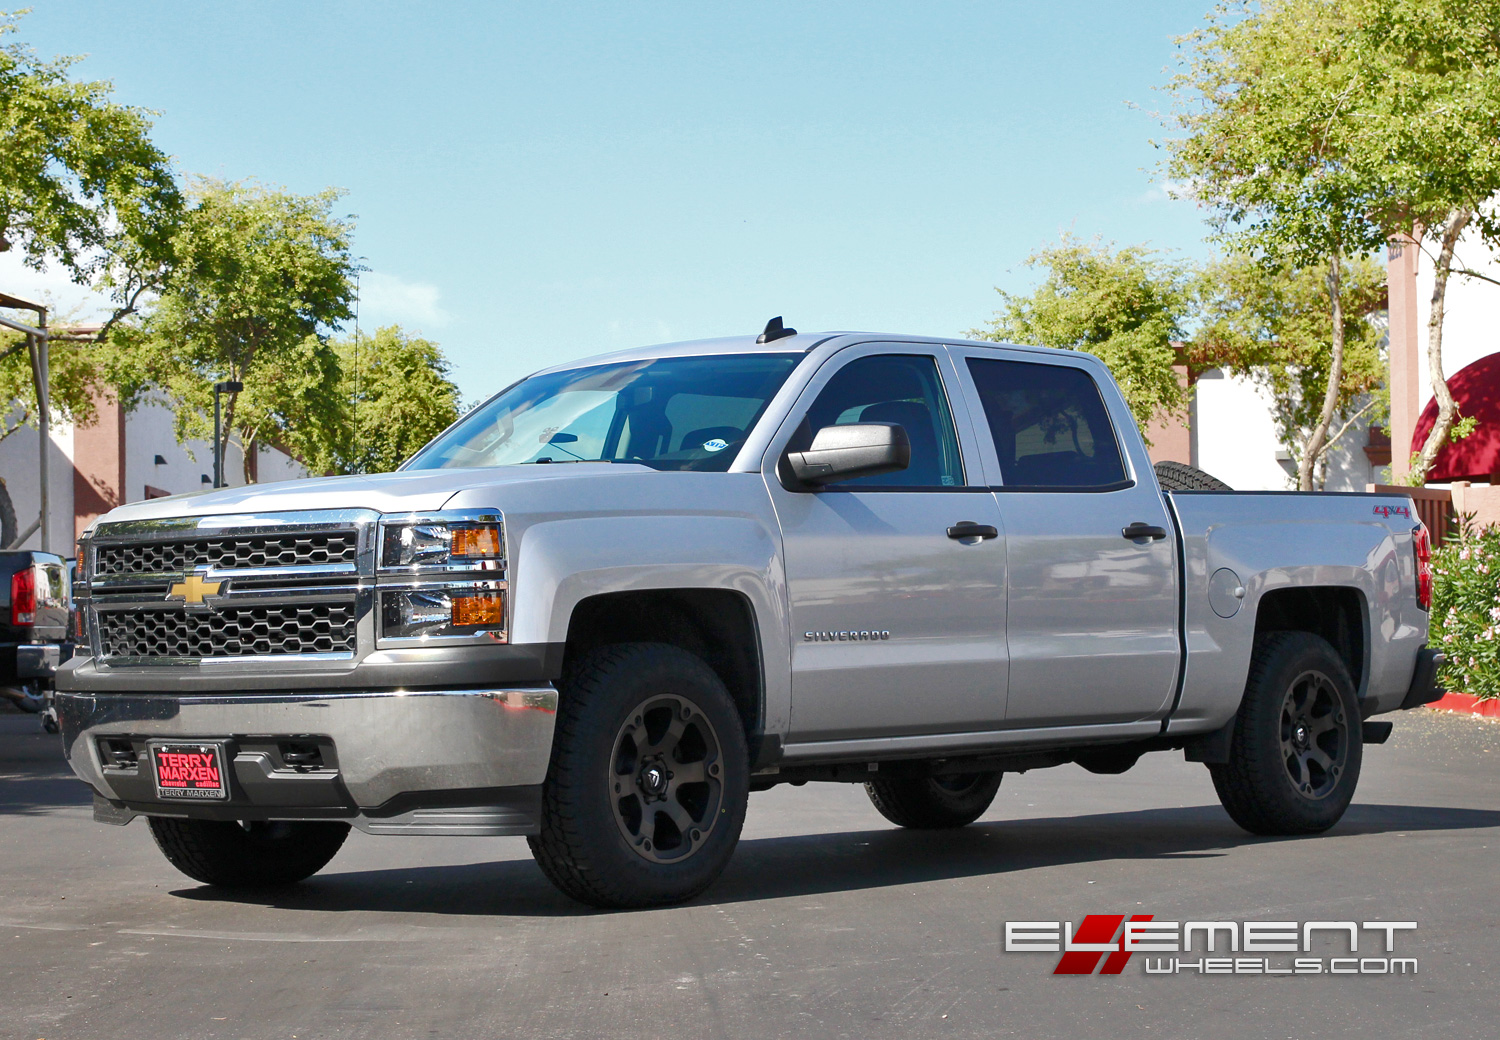 All Chevy chevy 1500 wheels : 18 inch Fuel Beast Black Machined wheels on 2015 Chevy Silverado ...